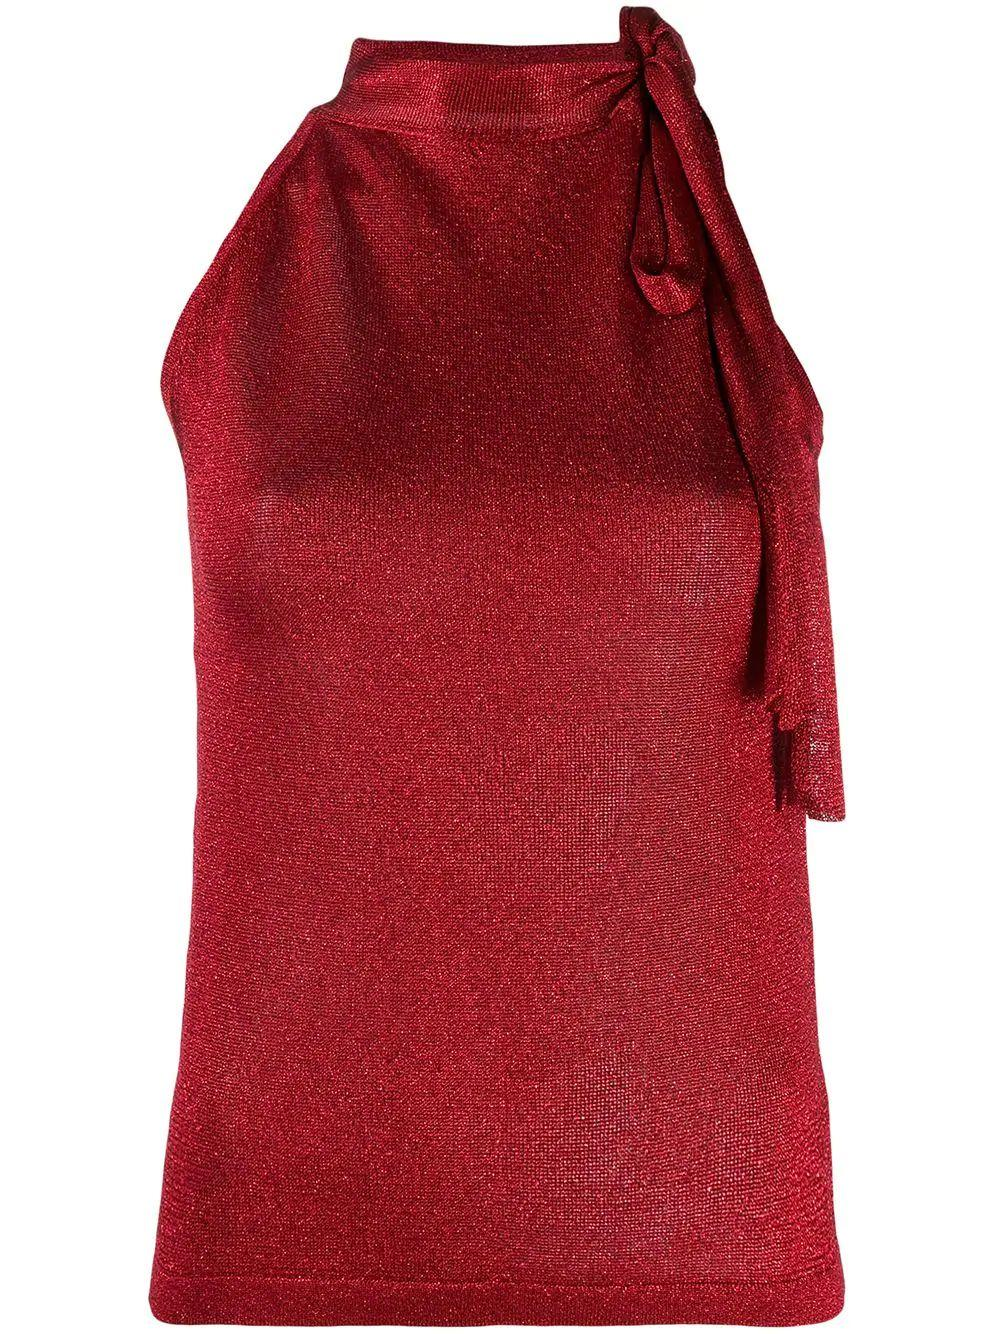 Sleeve Less Top With Neck Tie